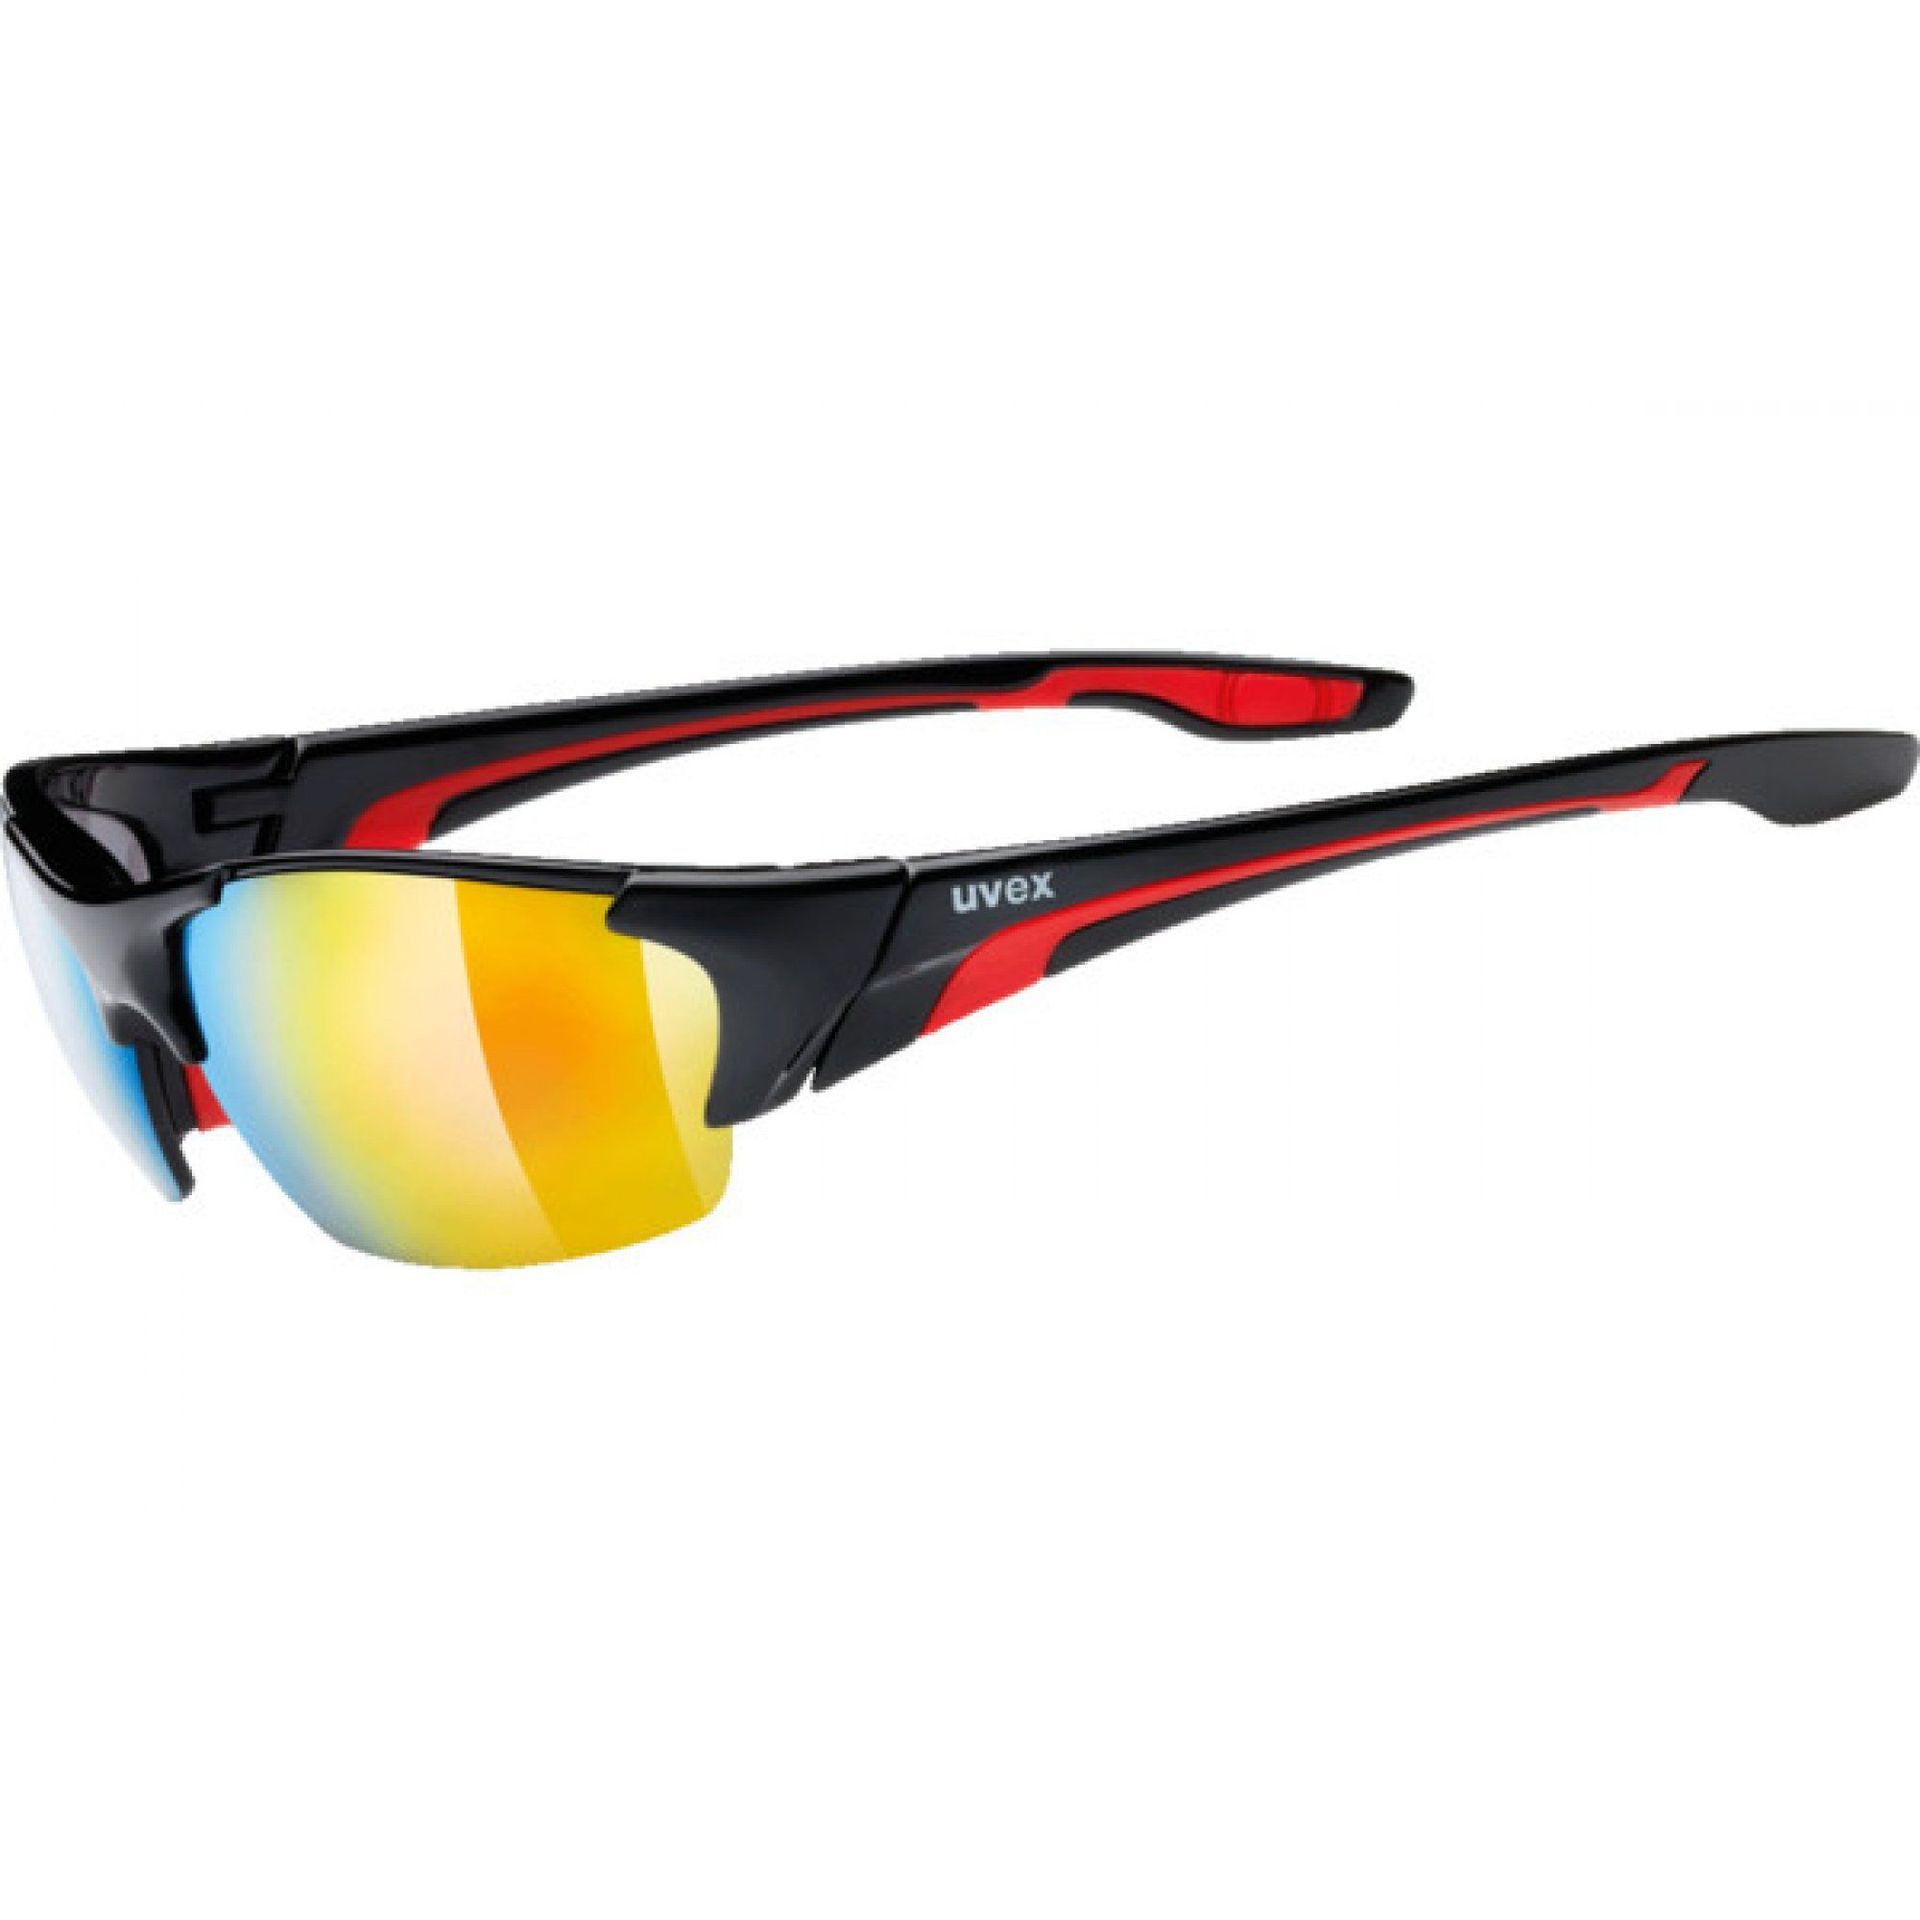 OKULARY UVEX BLAZE III 604|2316 BLACK|RED